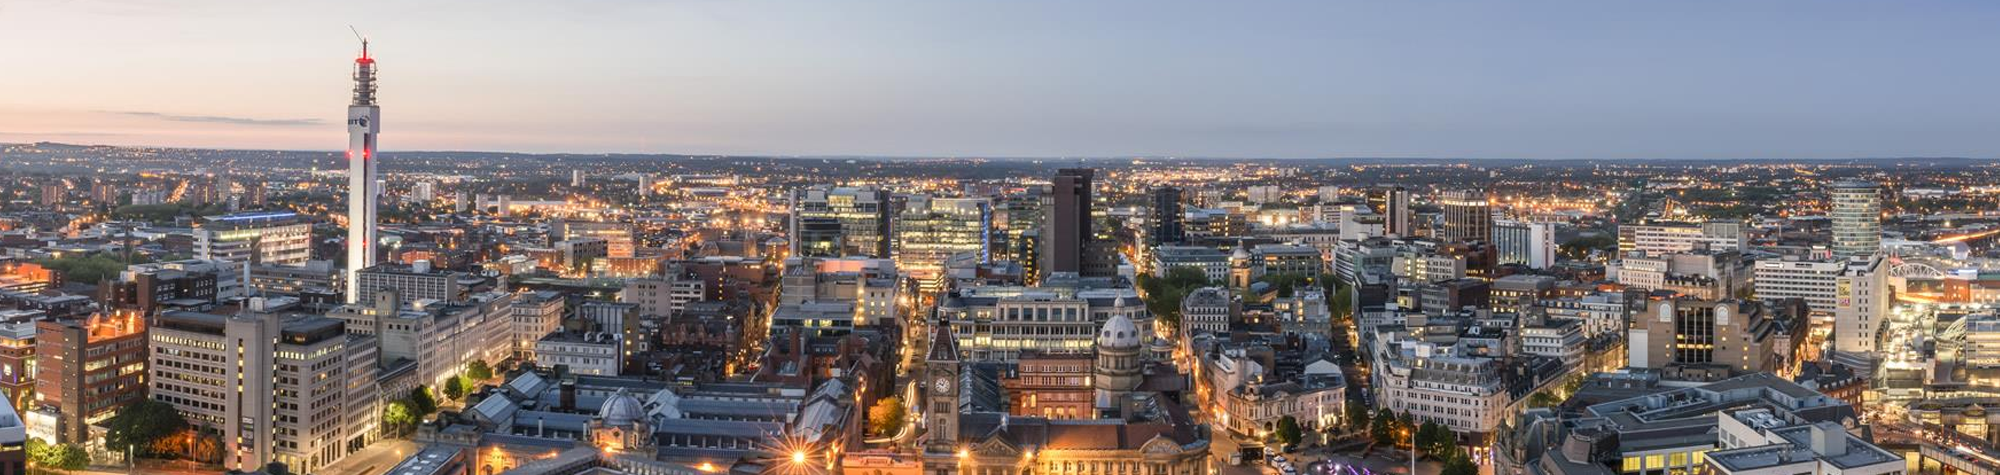 12 exciting and innovative tech businesses selected for ScaleUp Programme